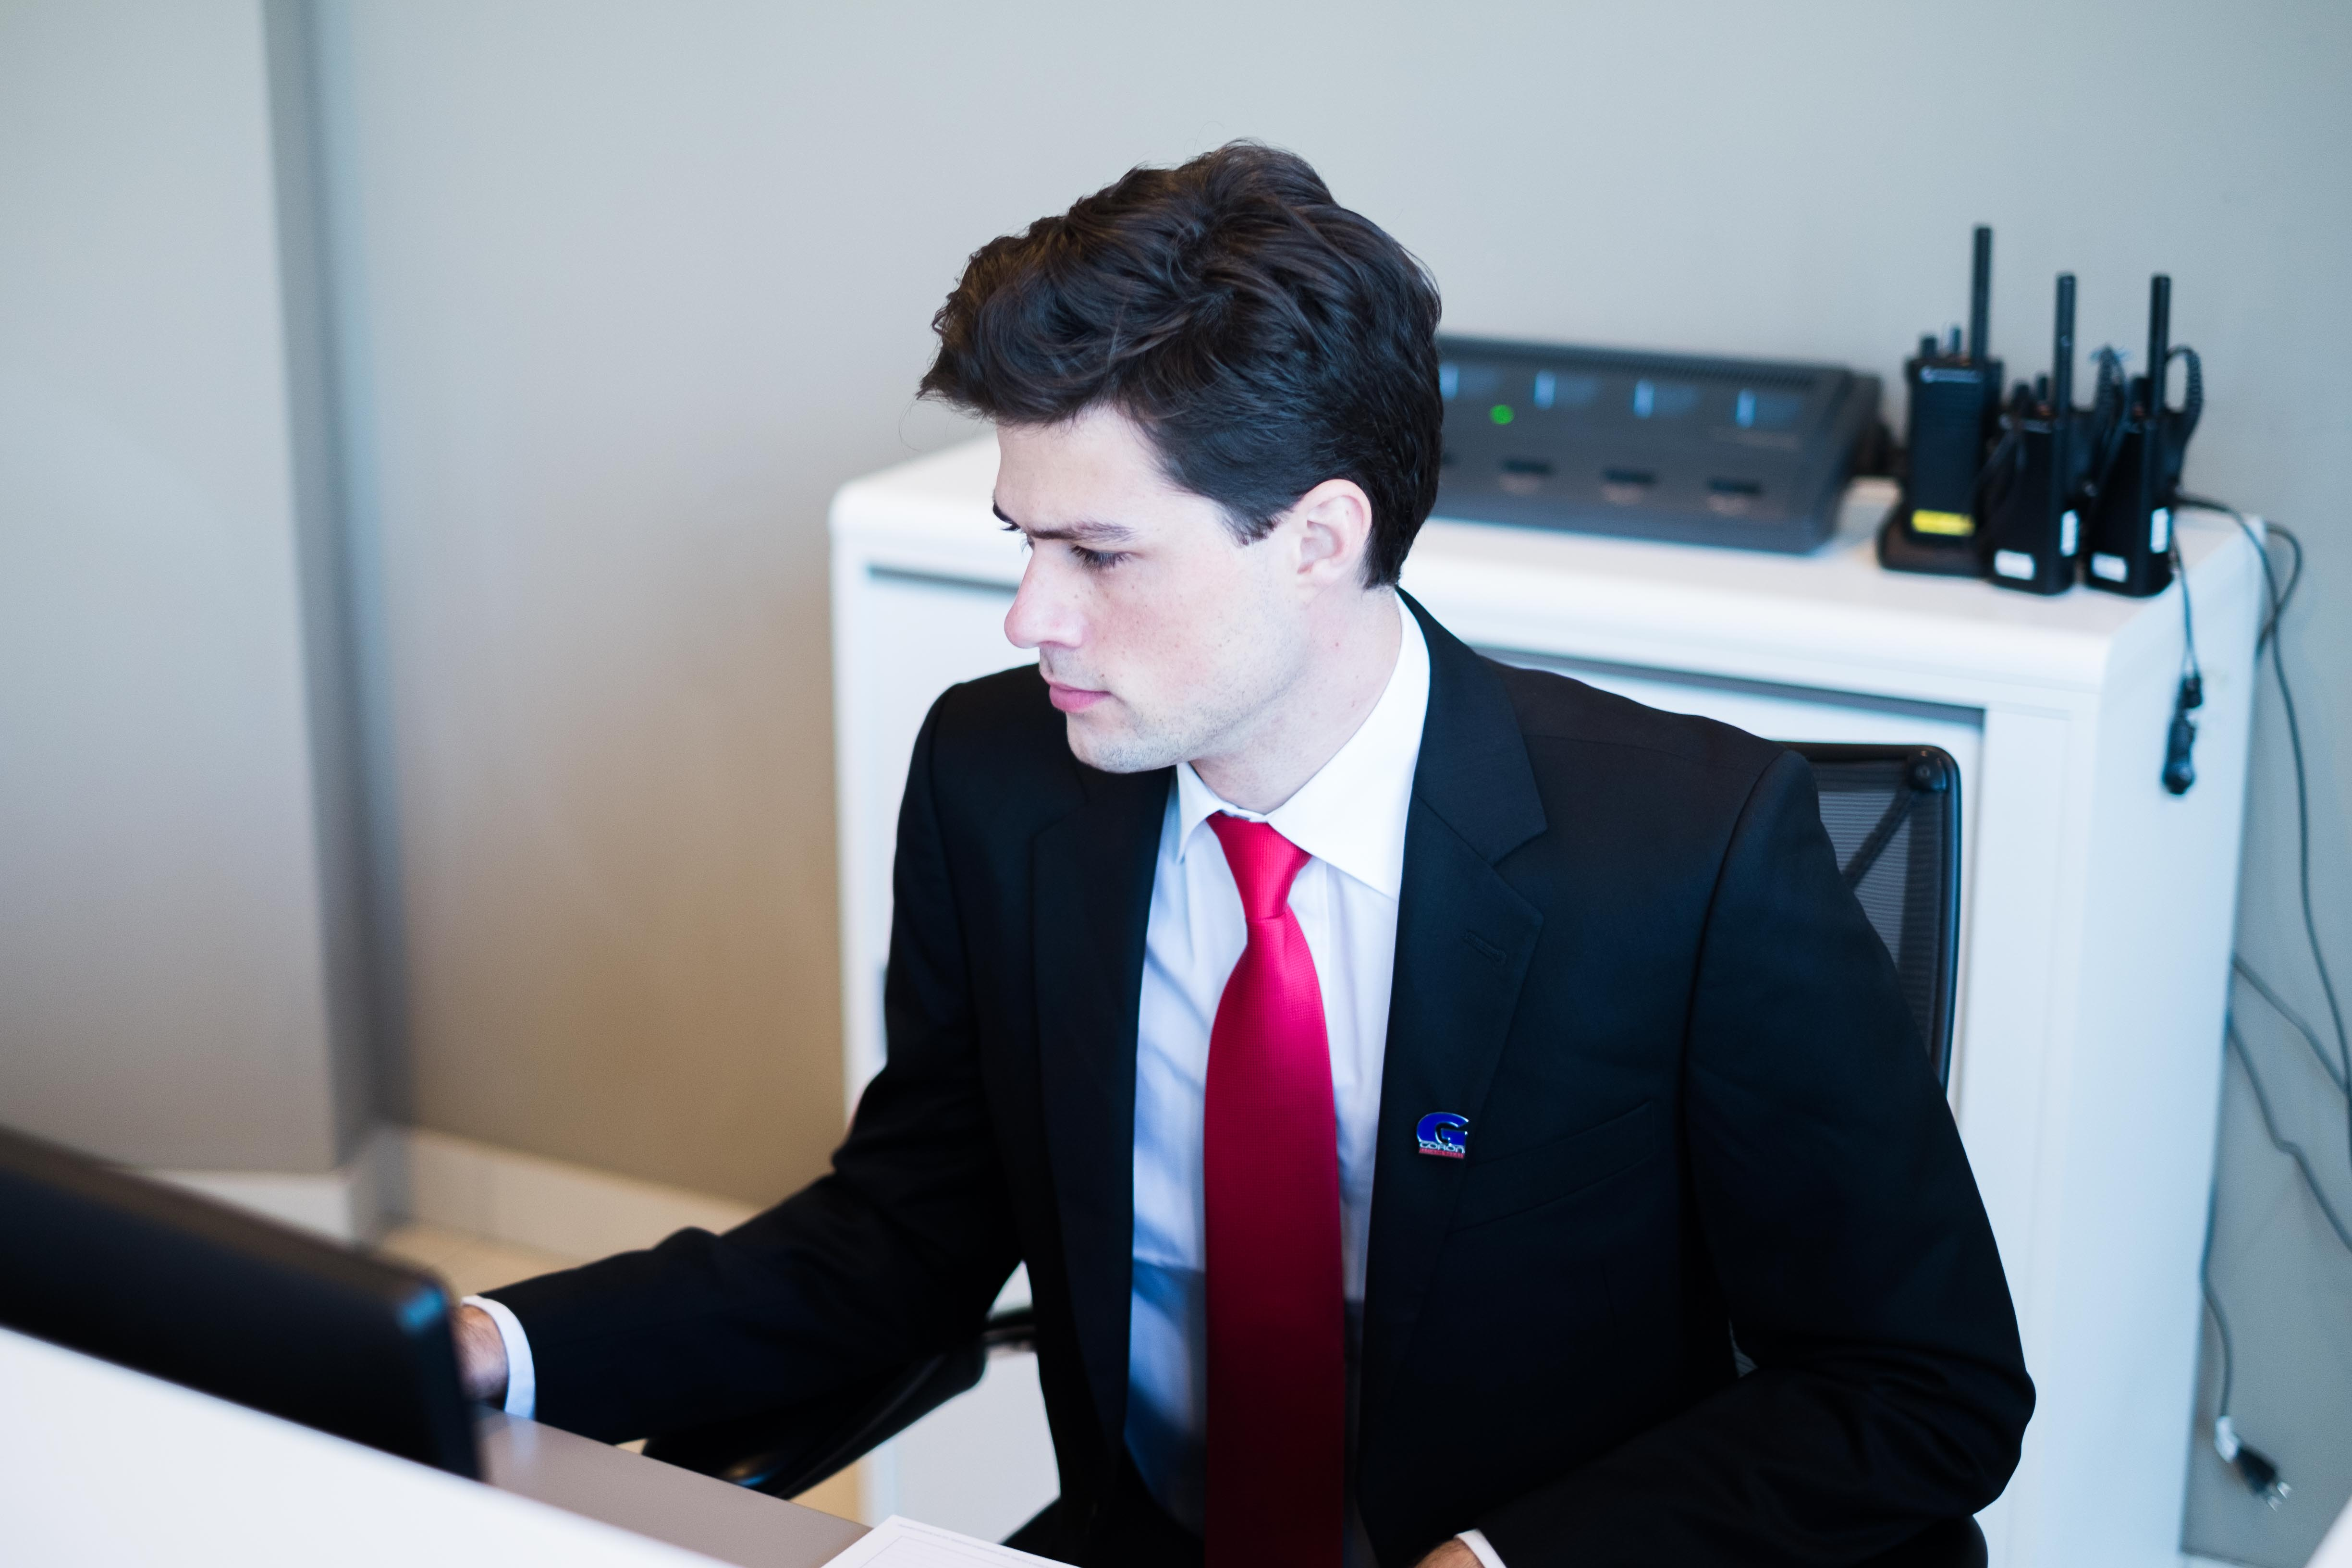 a security agent behind a desk